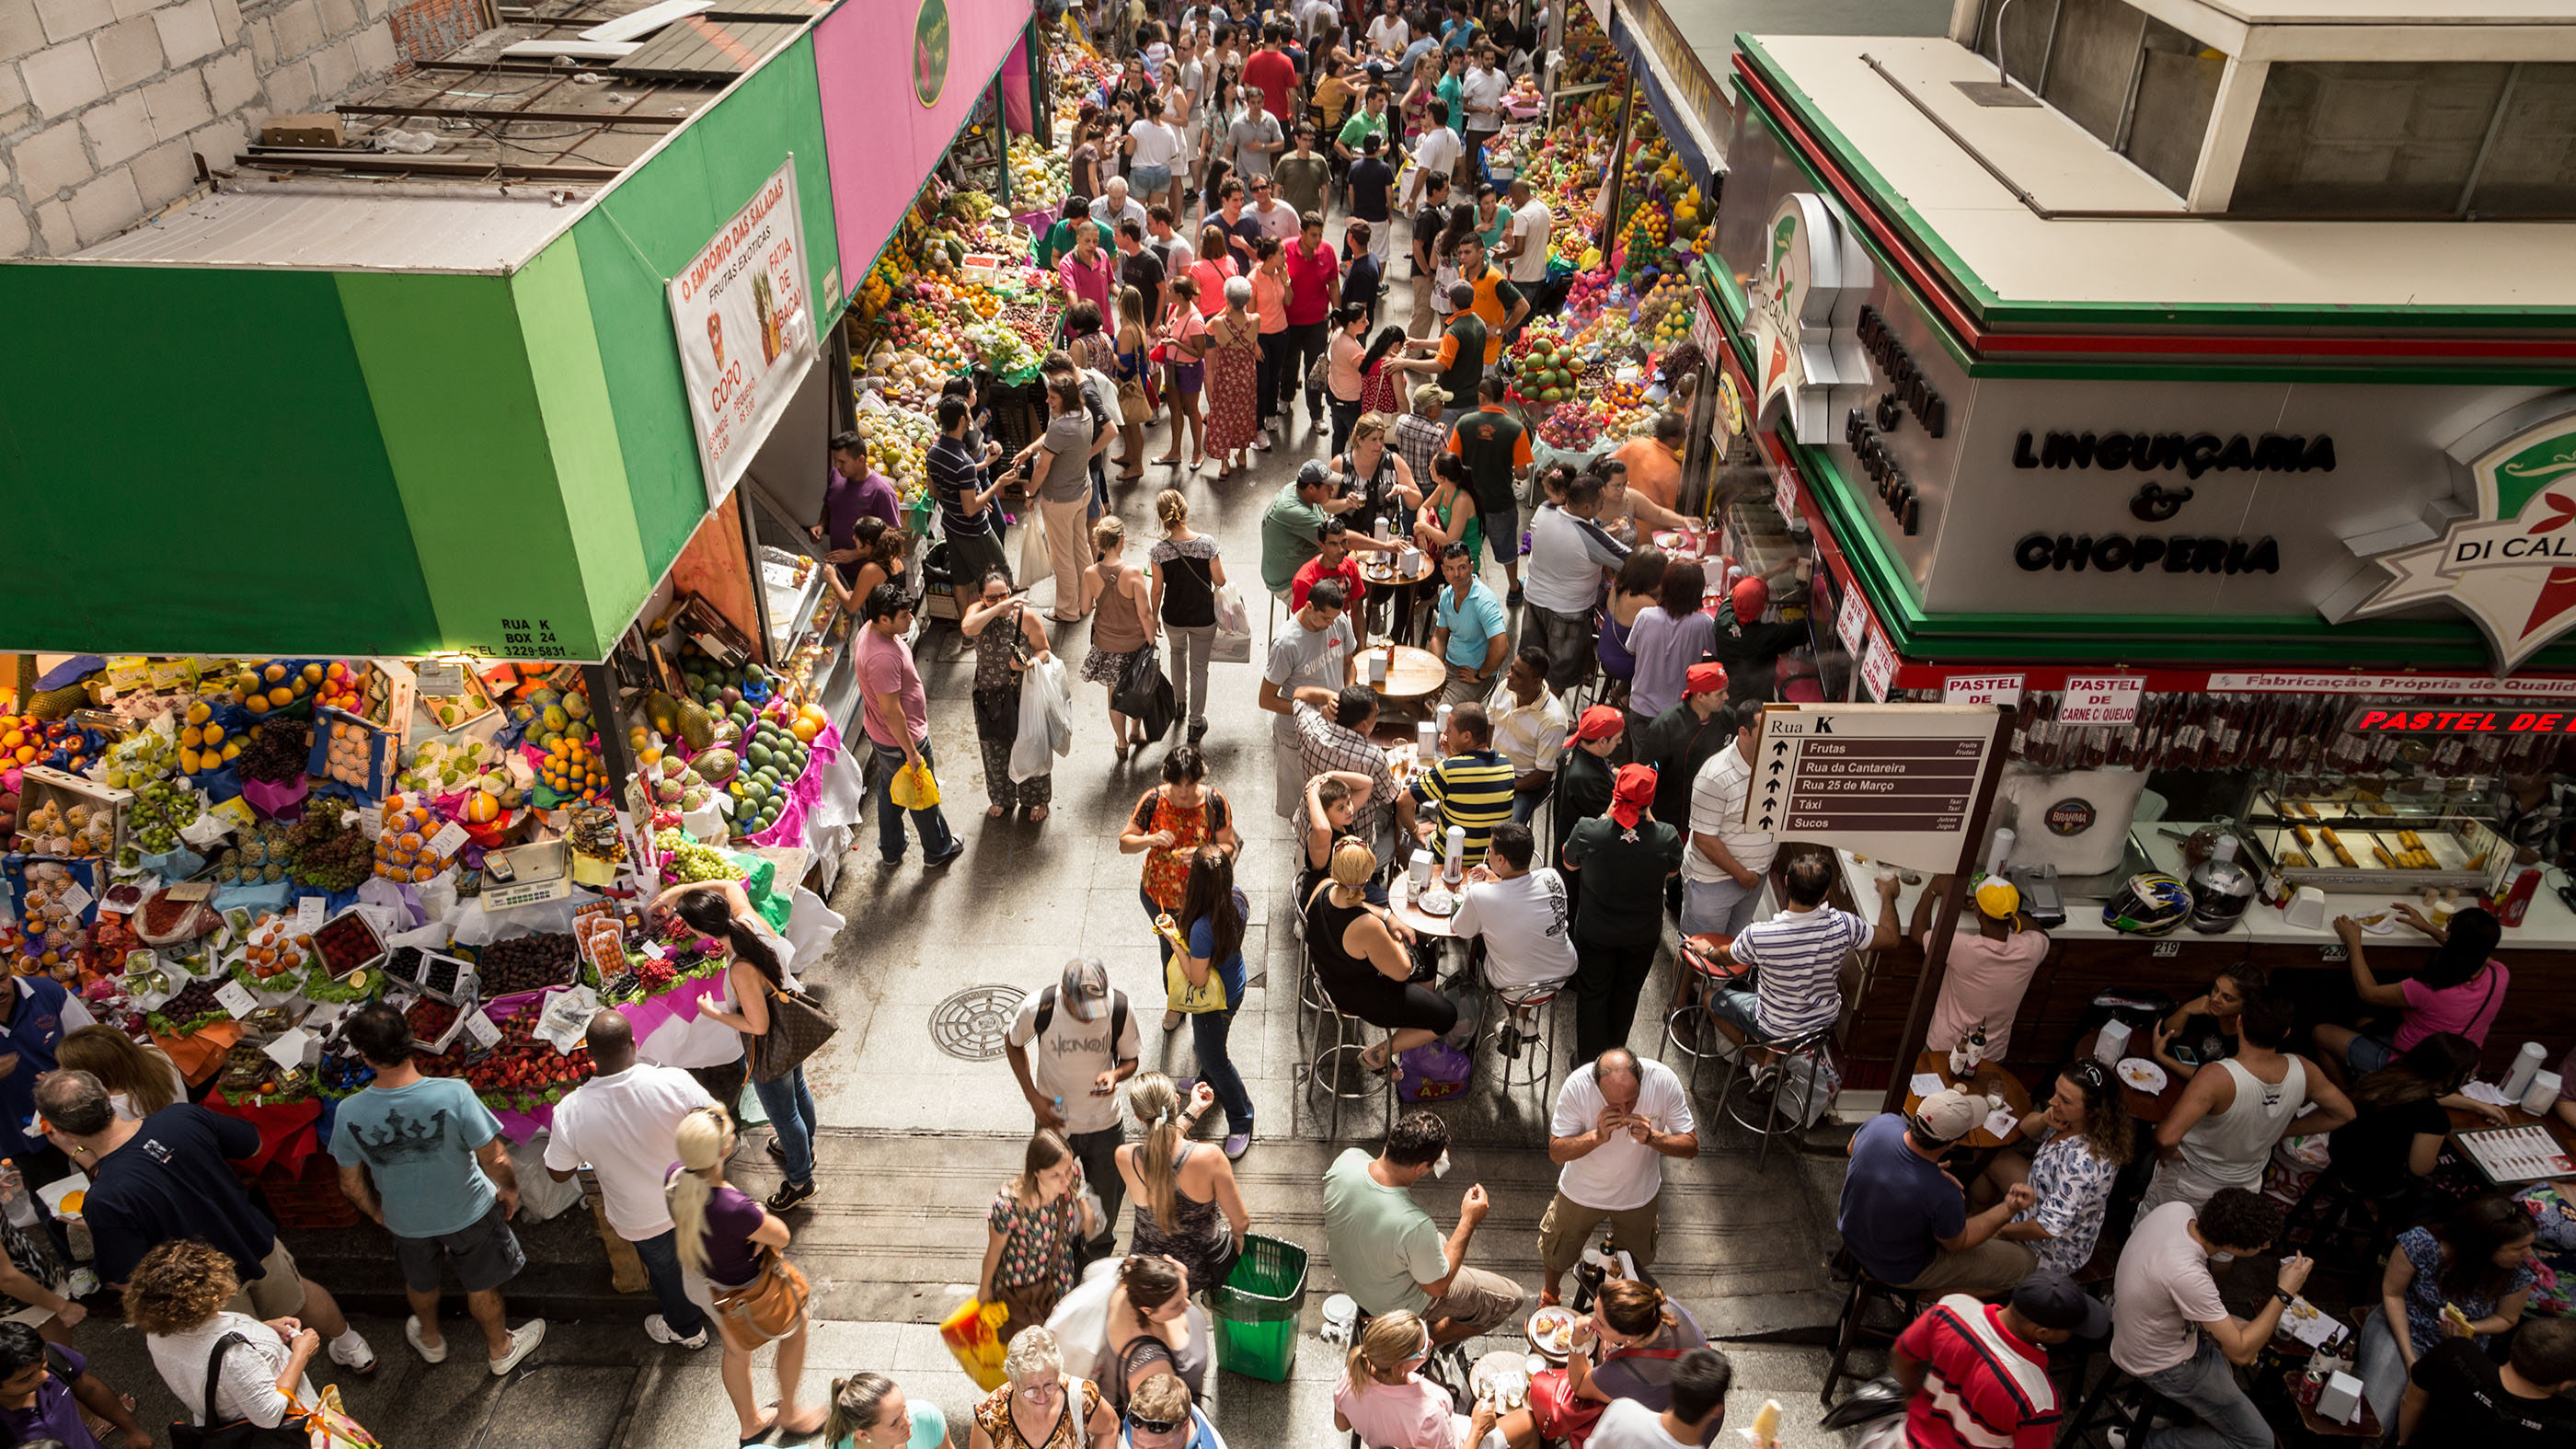 Coronavirus lingers in the air of crowded spaces, study finds